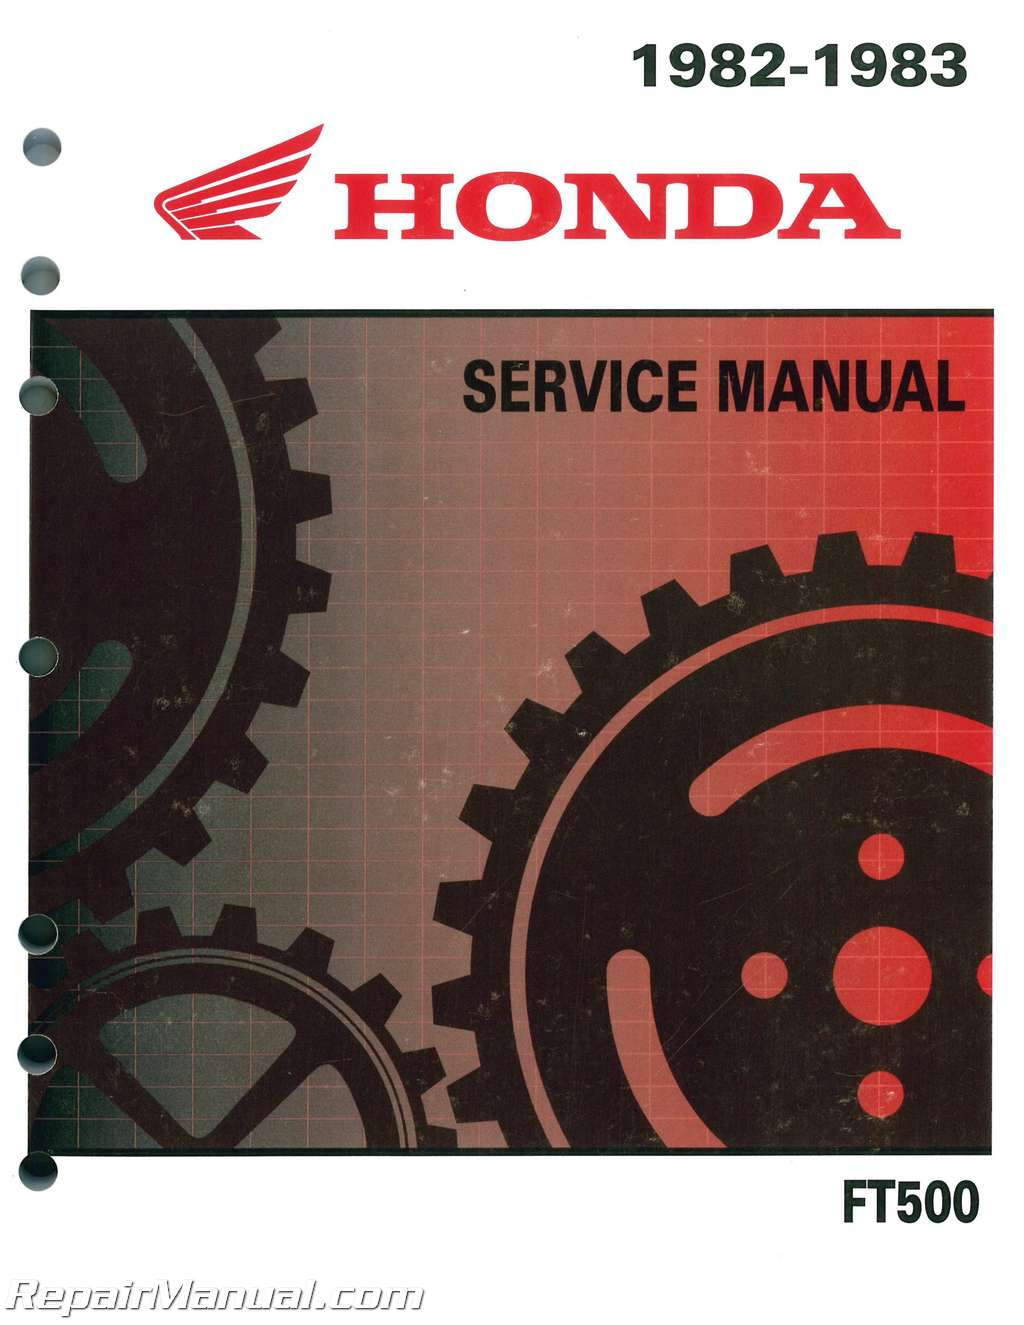 Honda Ascot Wiring Diagram 2002 1100 Schematic 1982 1983 Ft500 Motorcycle Service Manual Rh Repairmanual Com Accord Civic Schematics